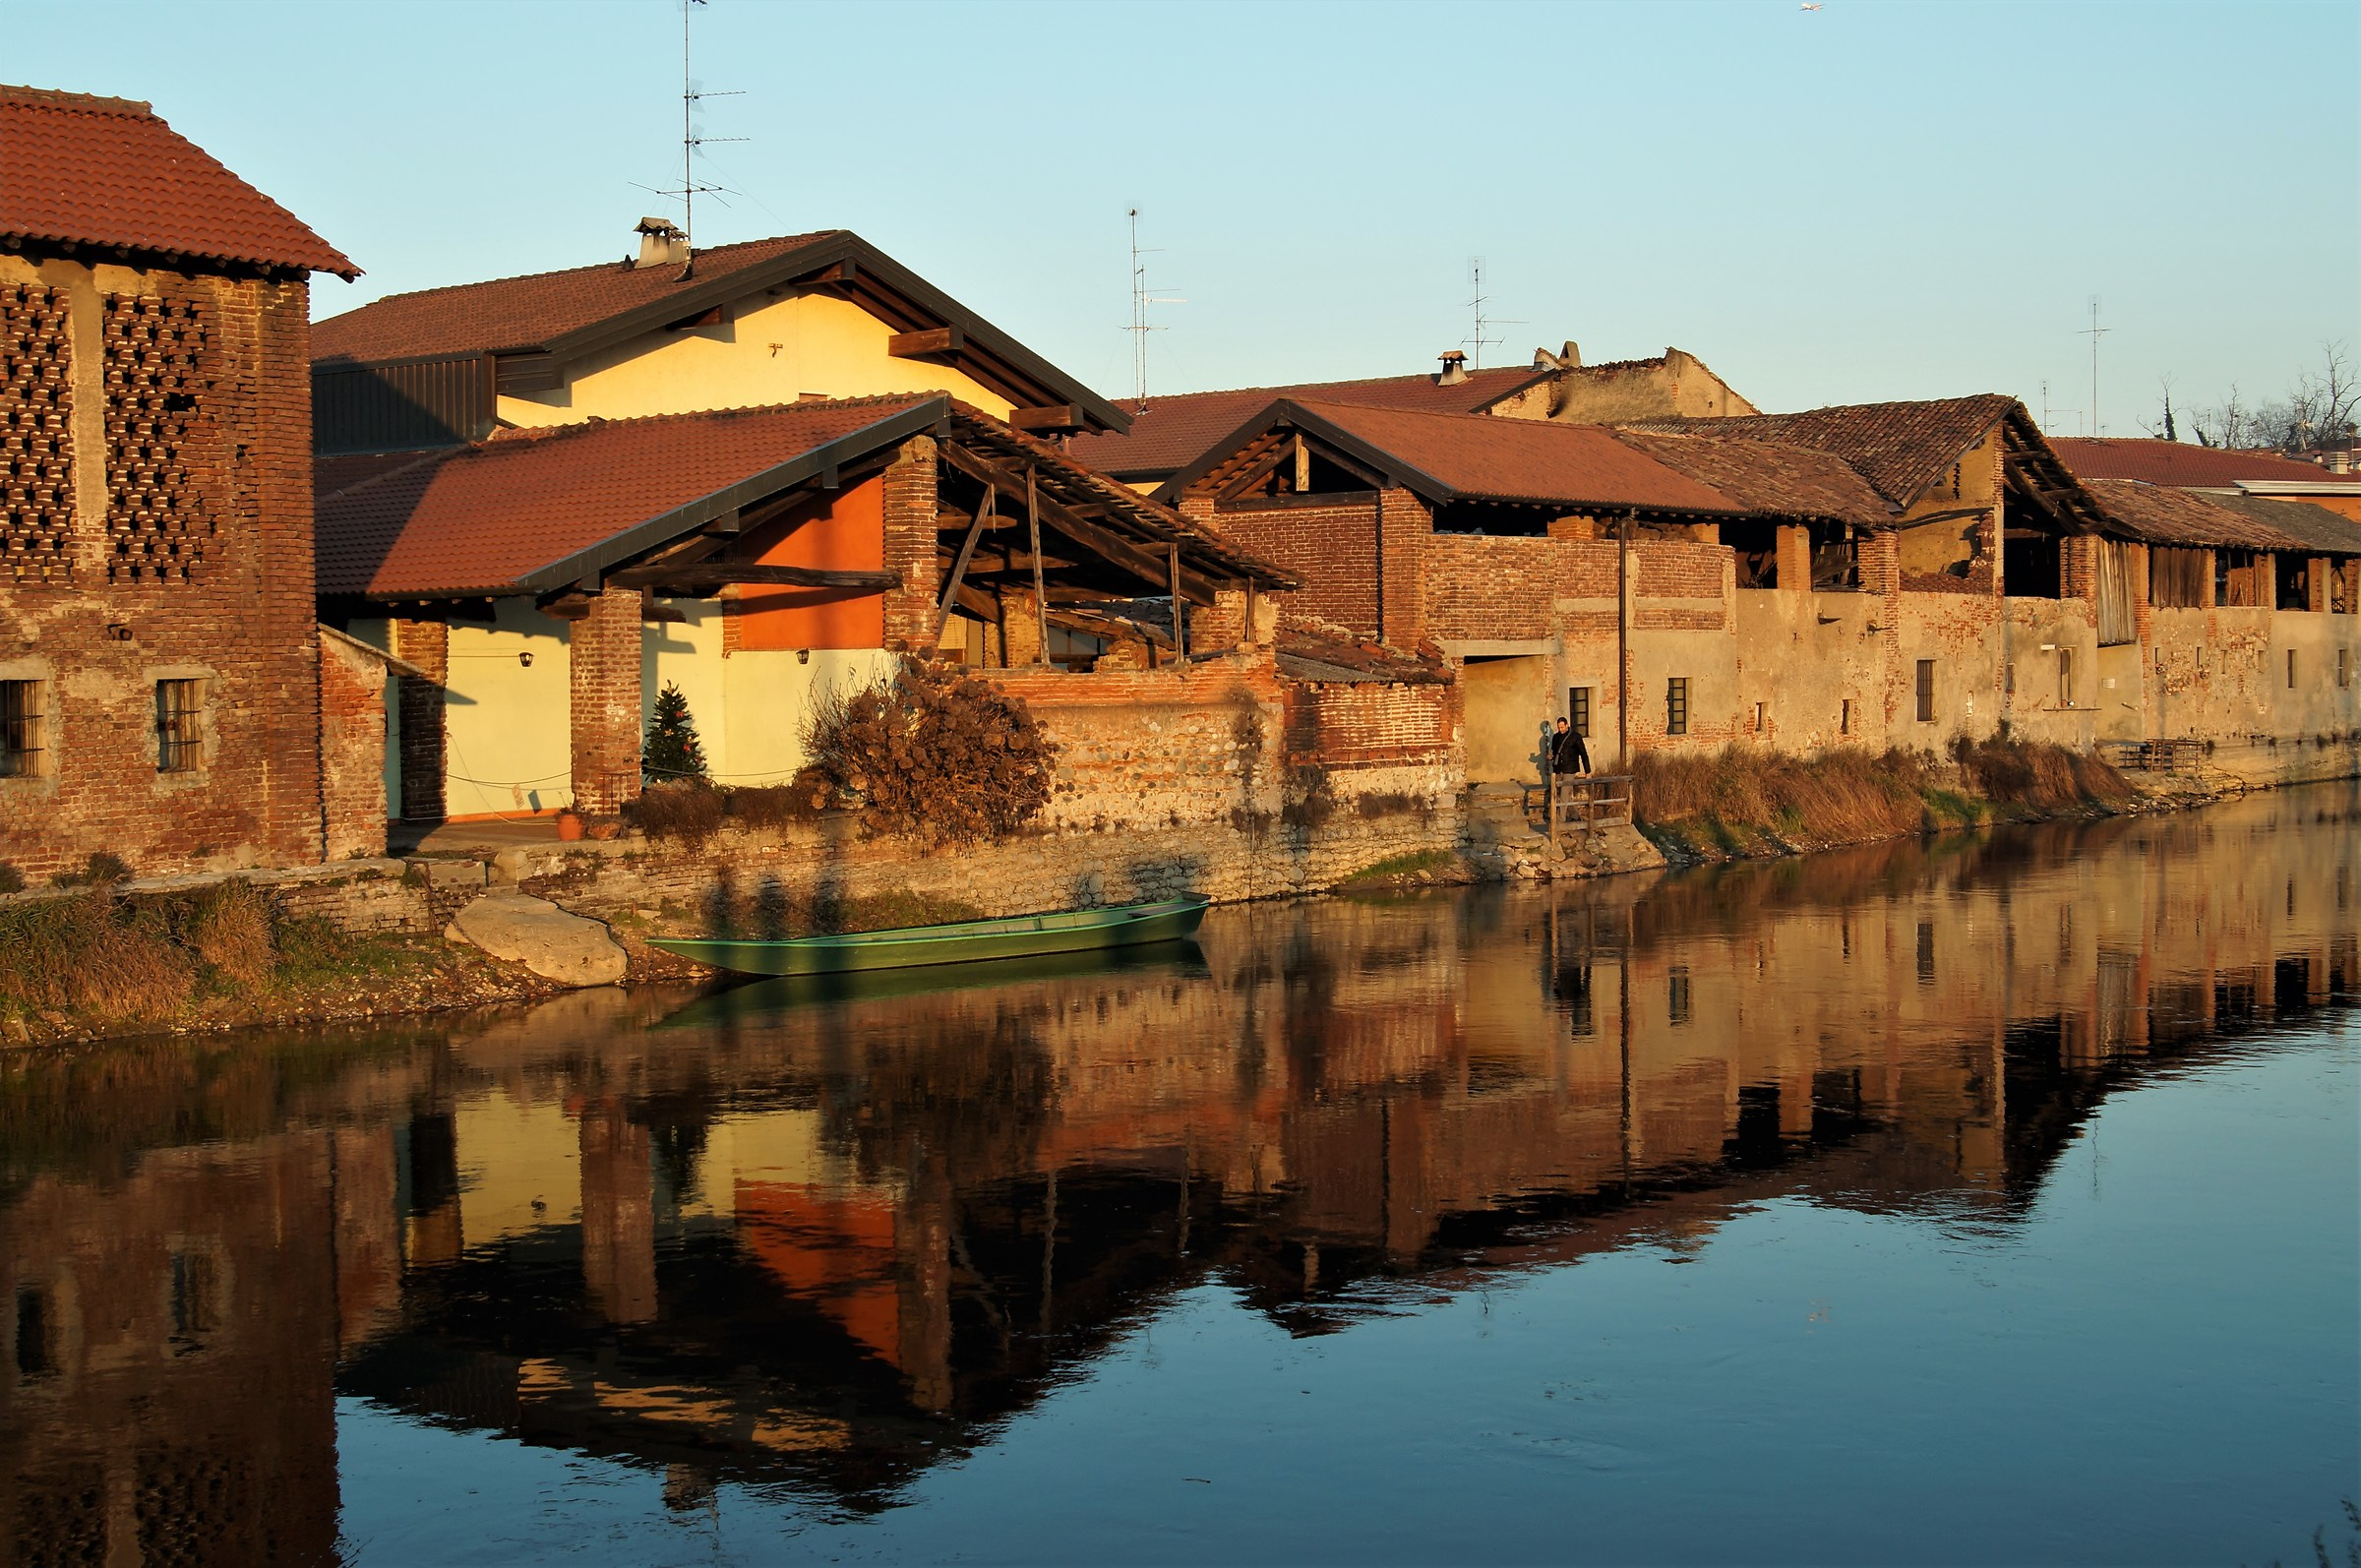 New Year's Eve on the Naviglio in Bernate...